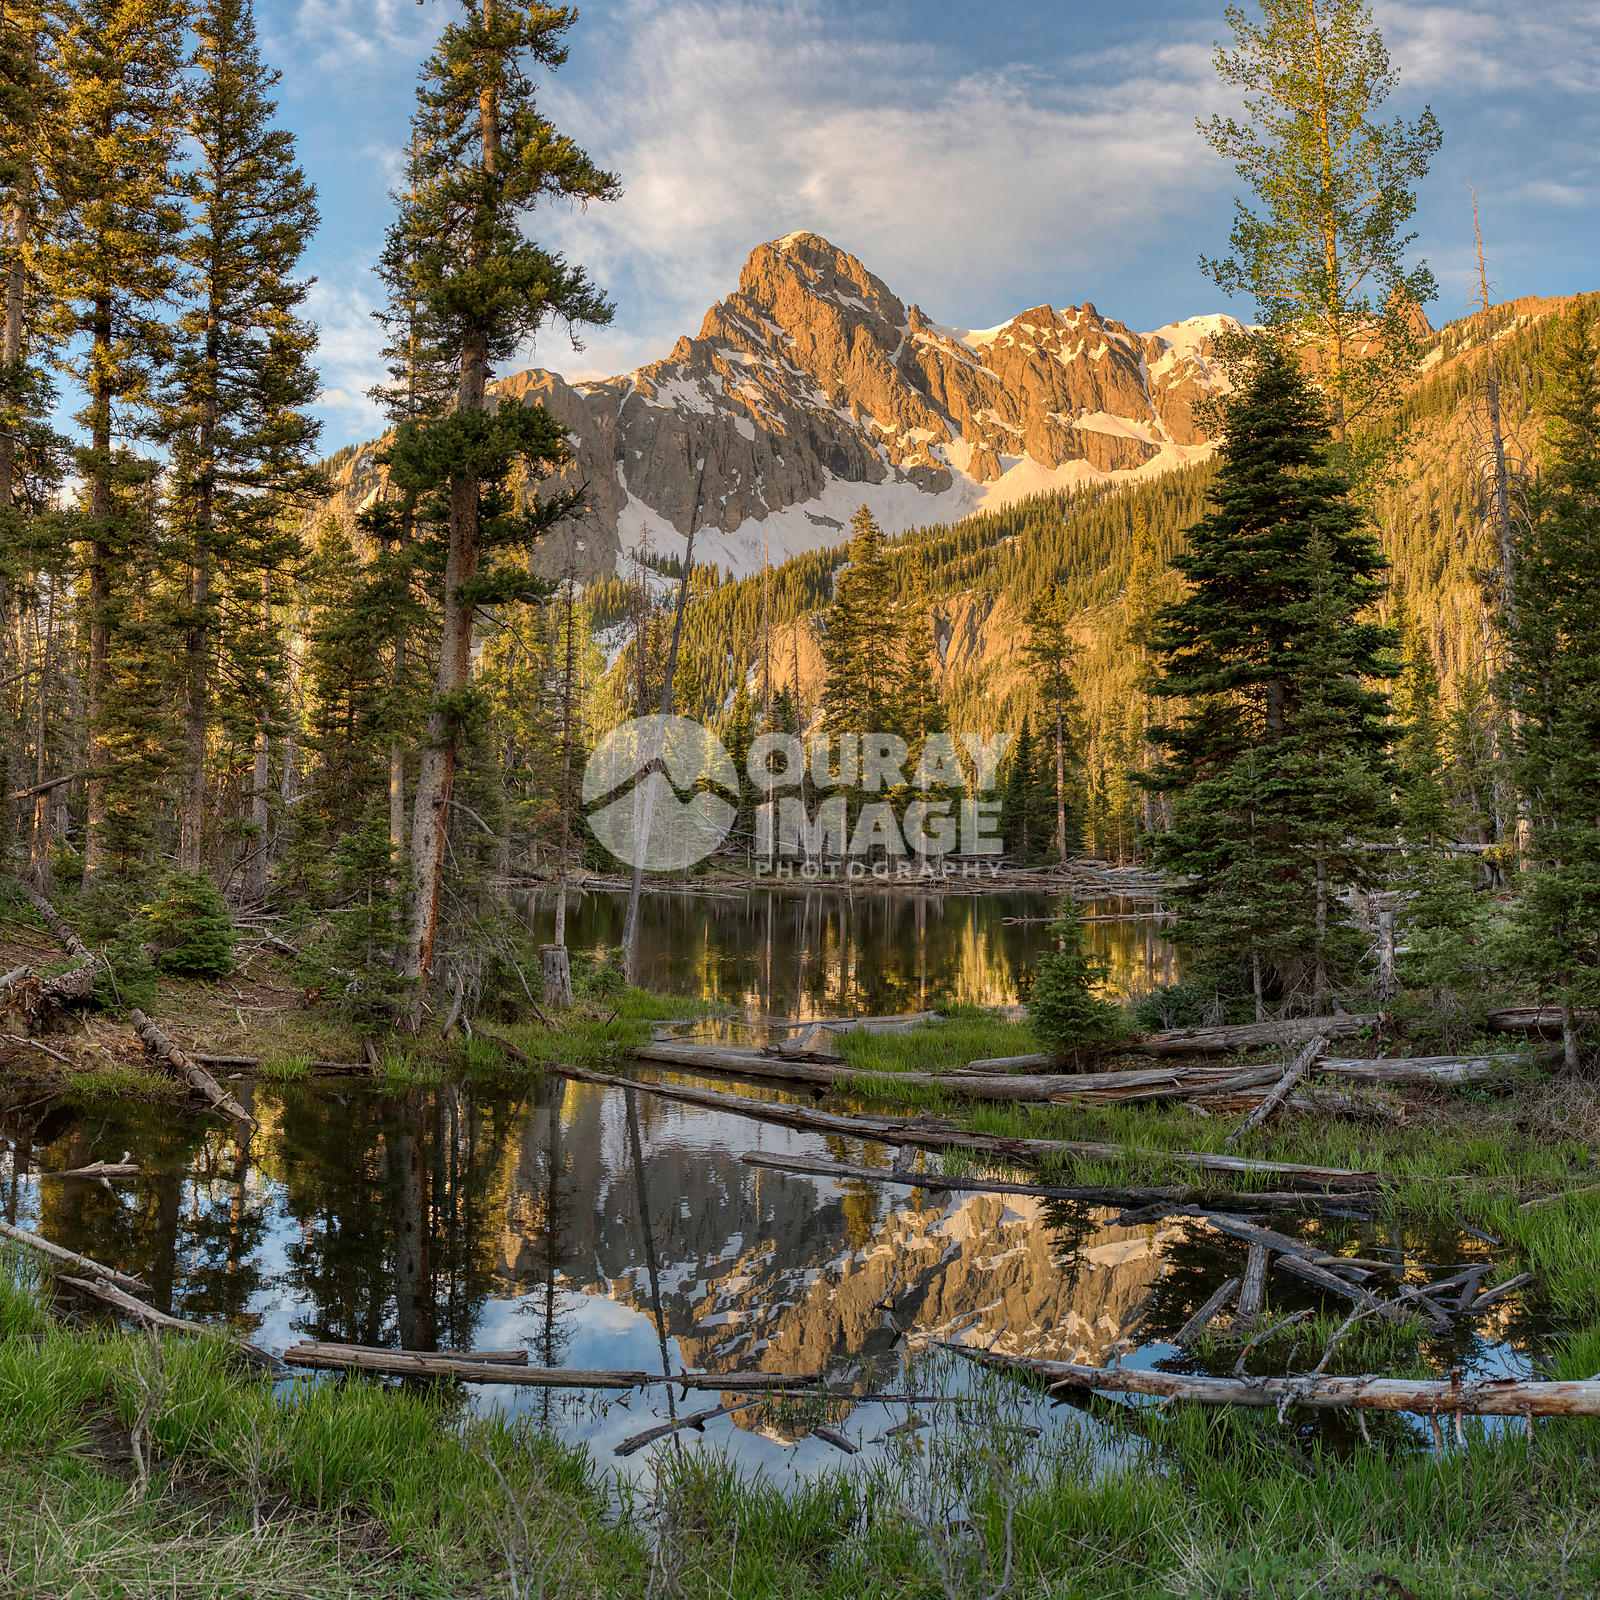 Morning Reflections at Peak S9 in the Sneffels Range